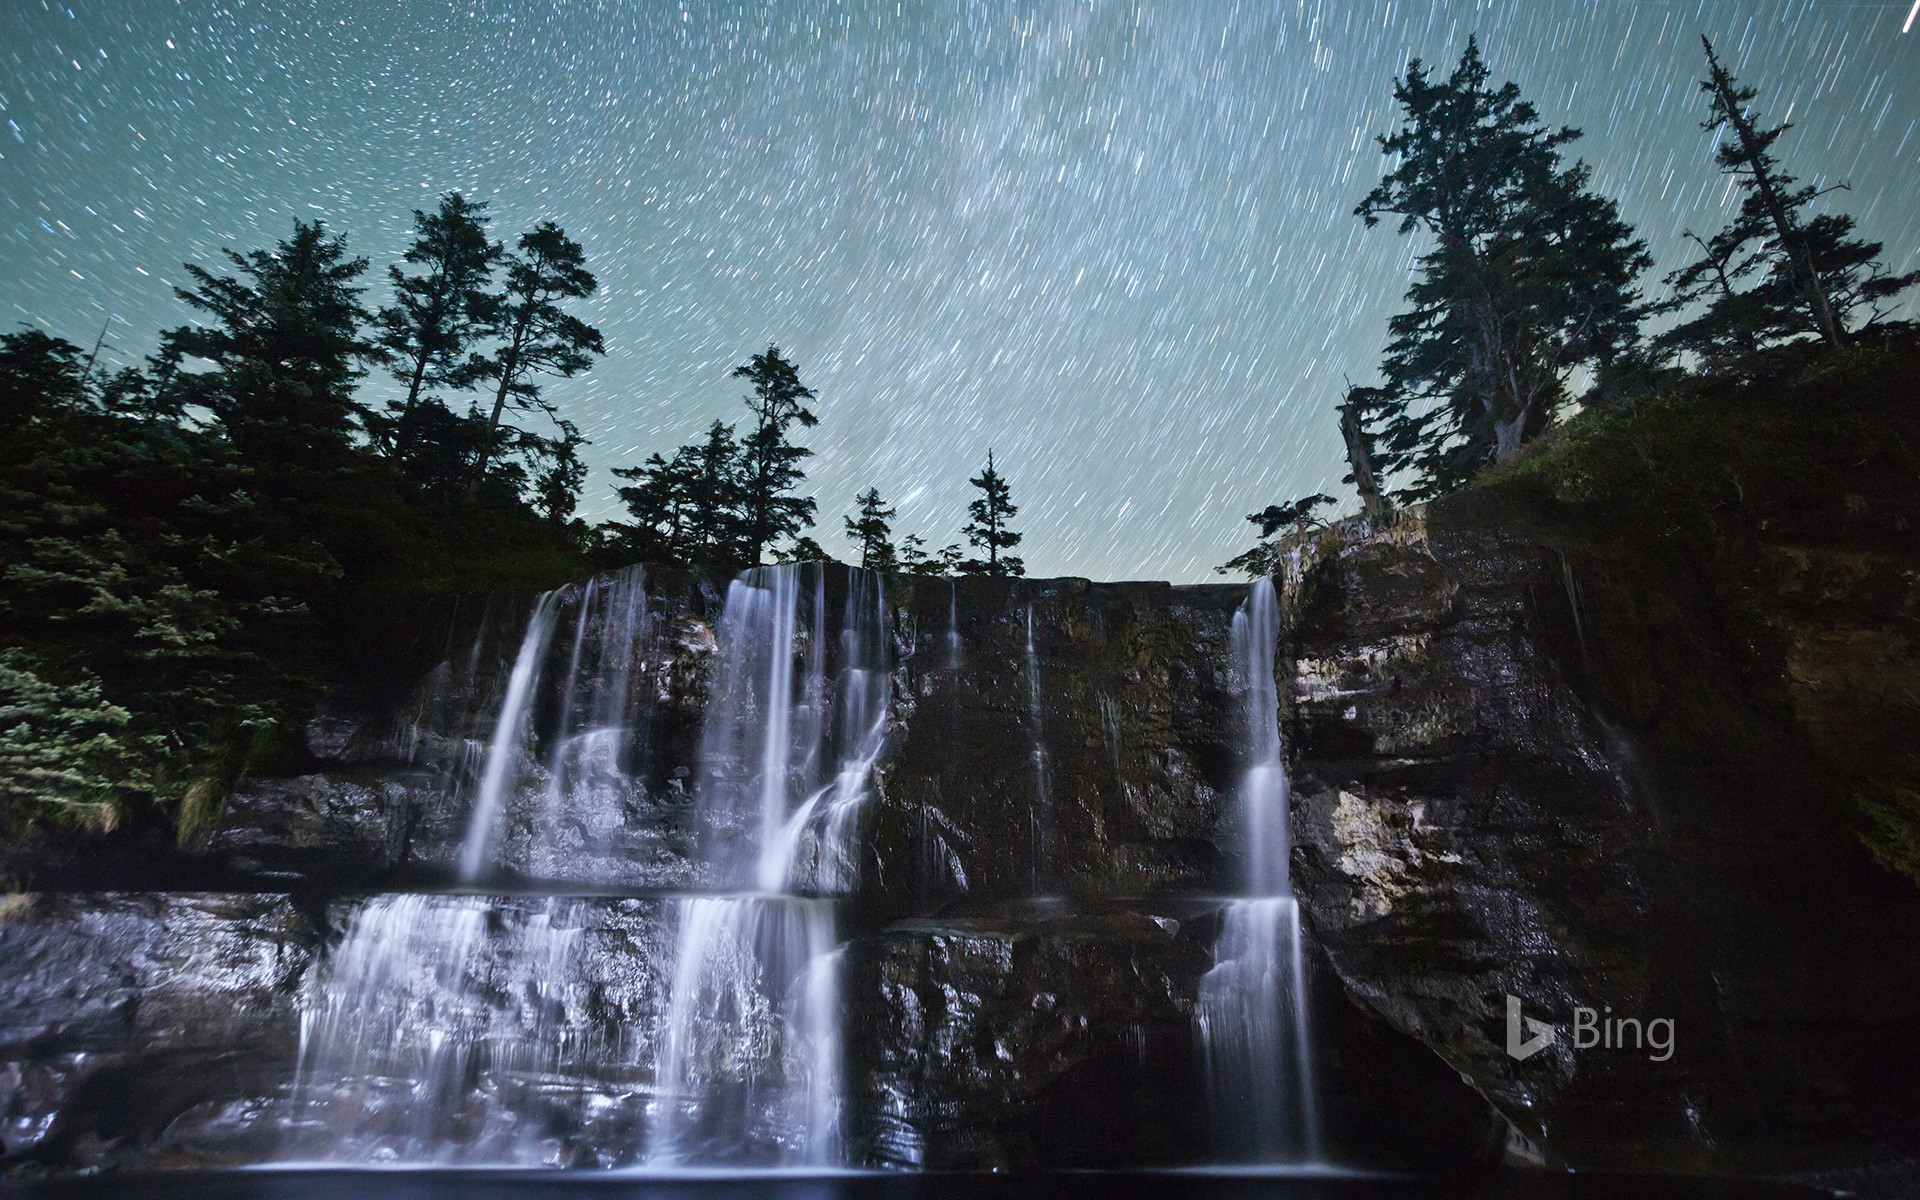 Tsusiat Falls along the West Coast Trail in B.C., Canada